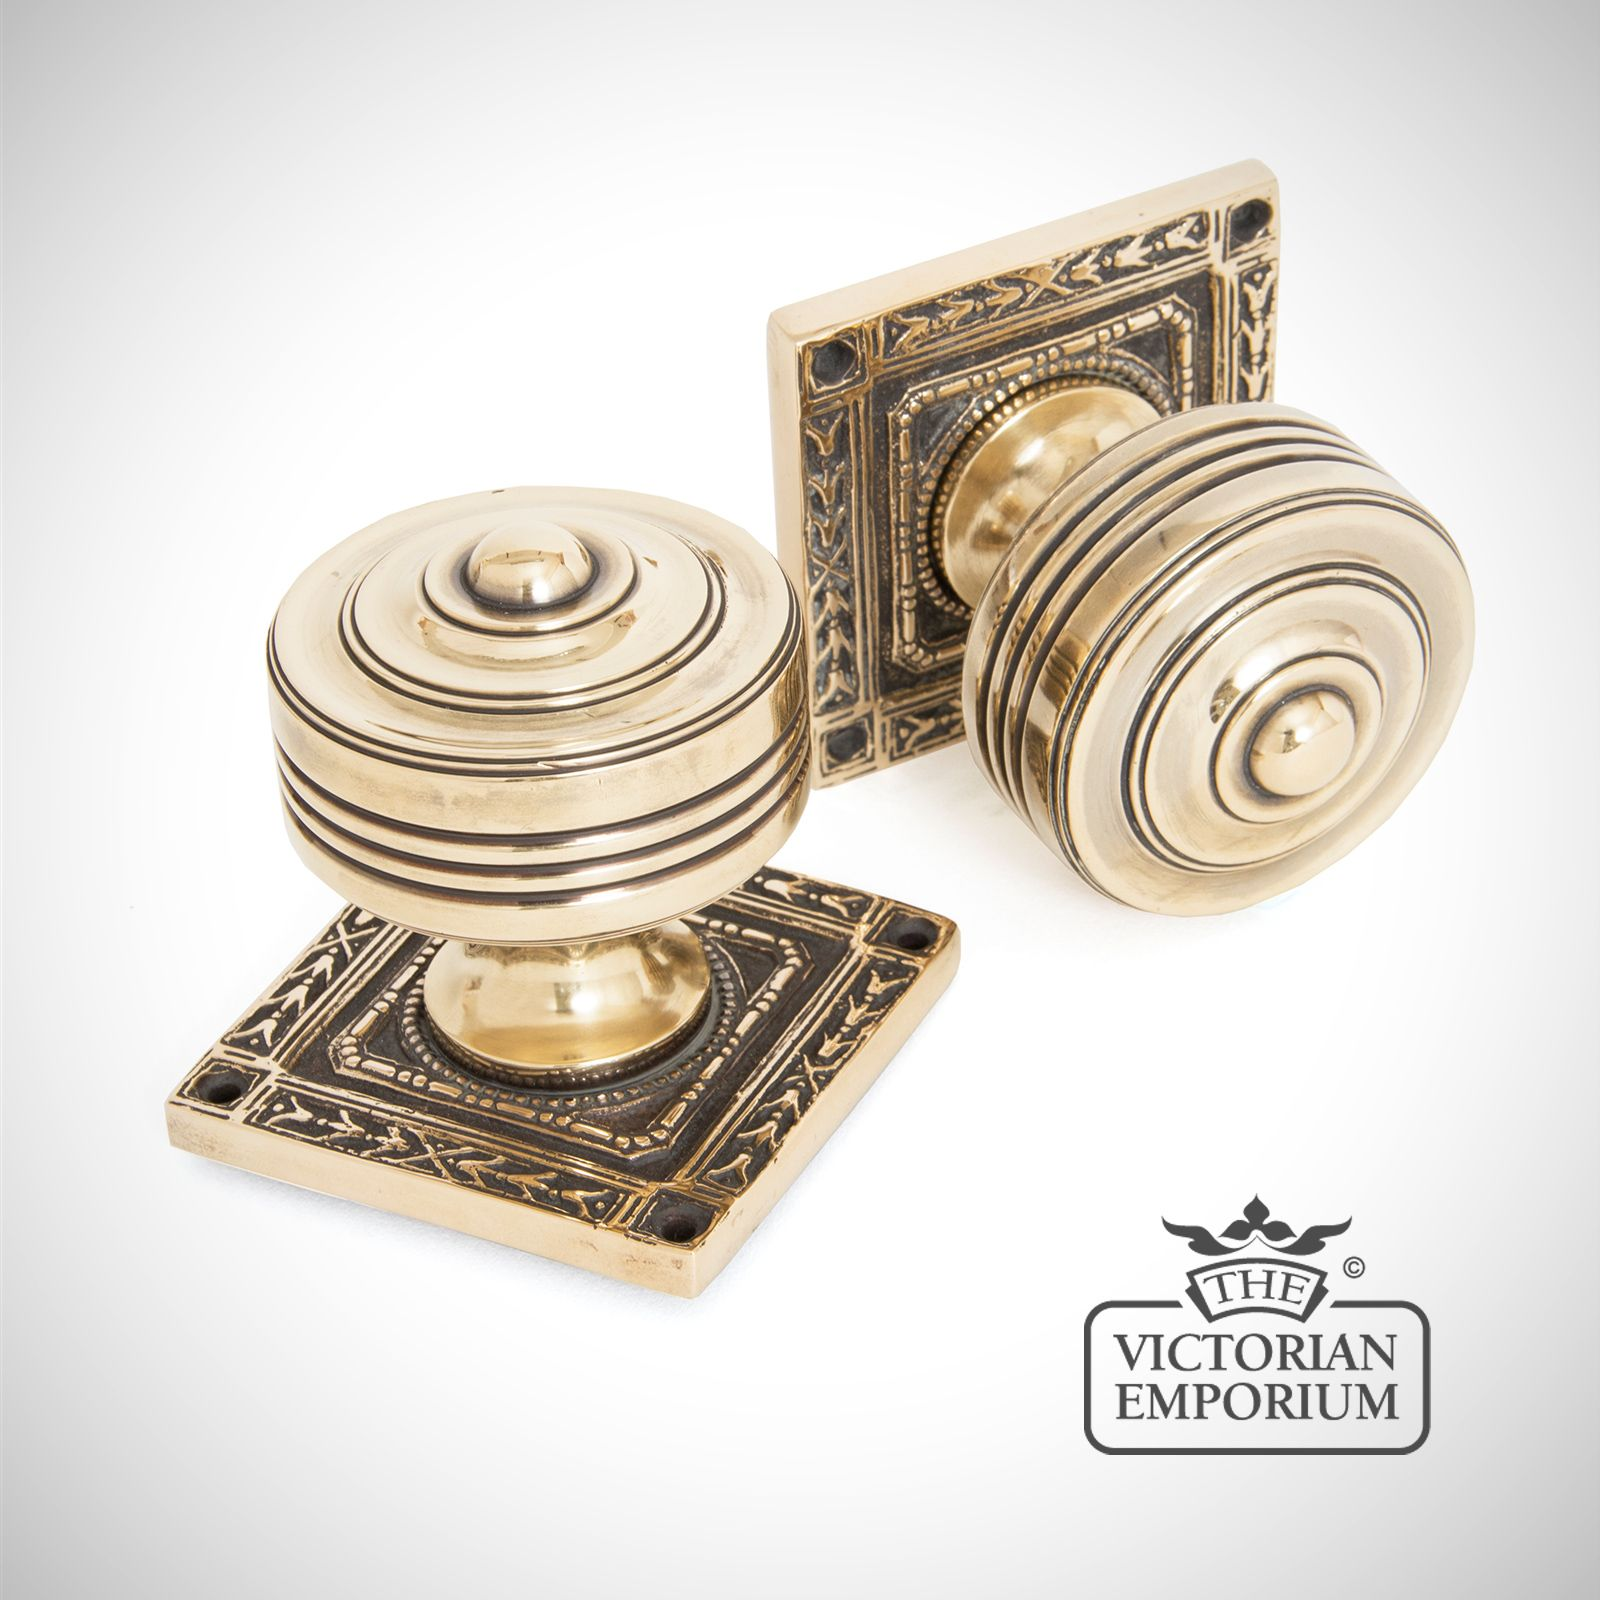 Highly Decorative Mortice Knob Set in Aged Brass